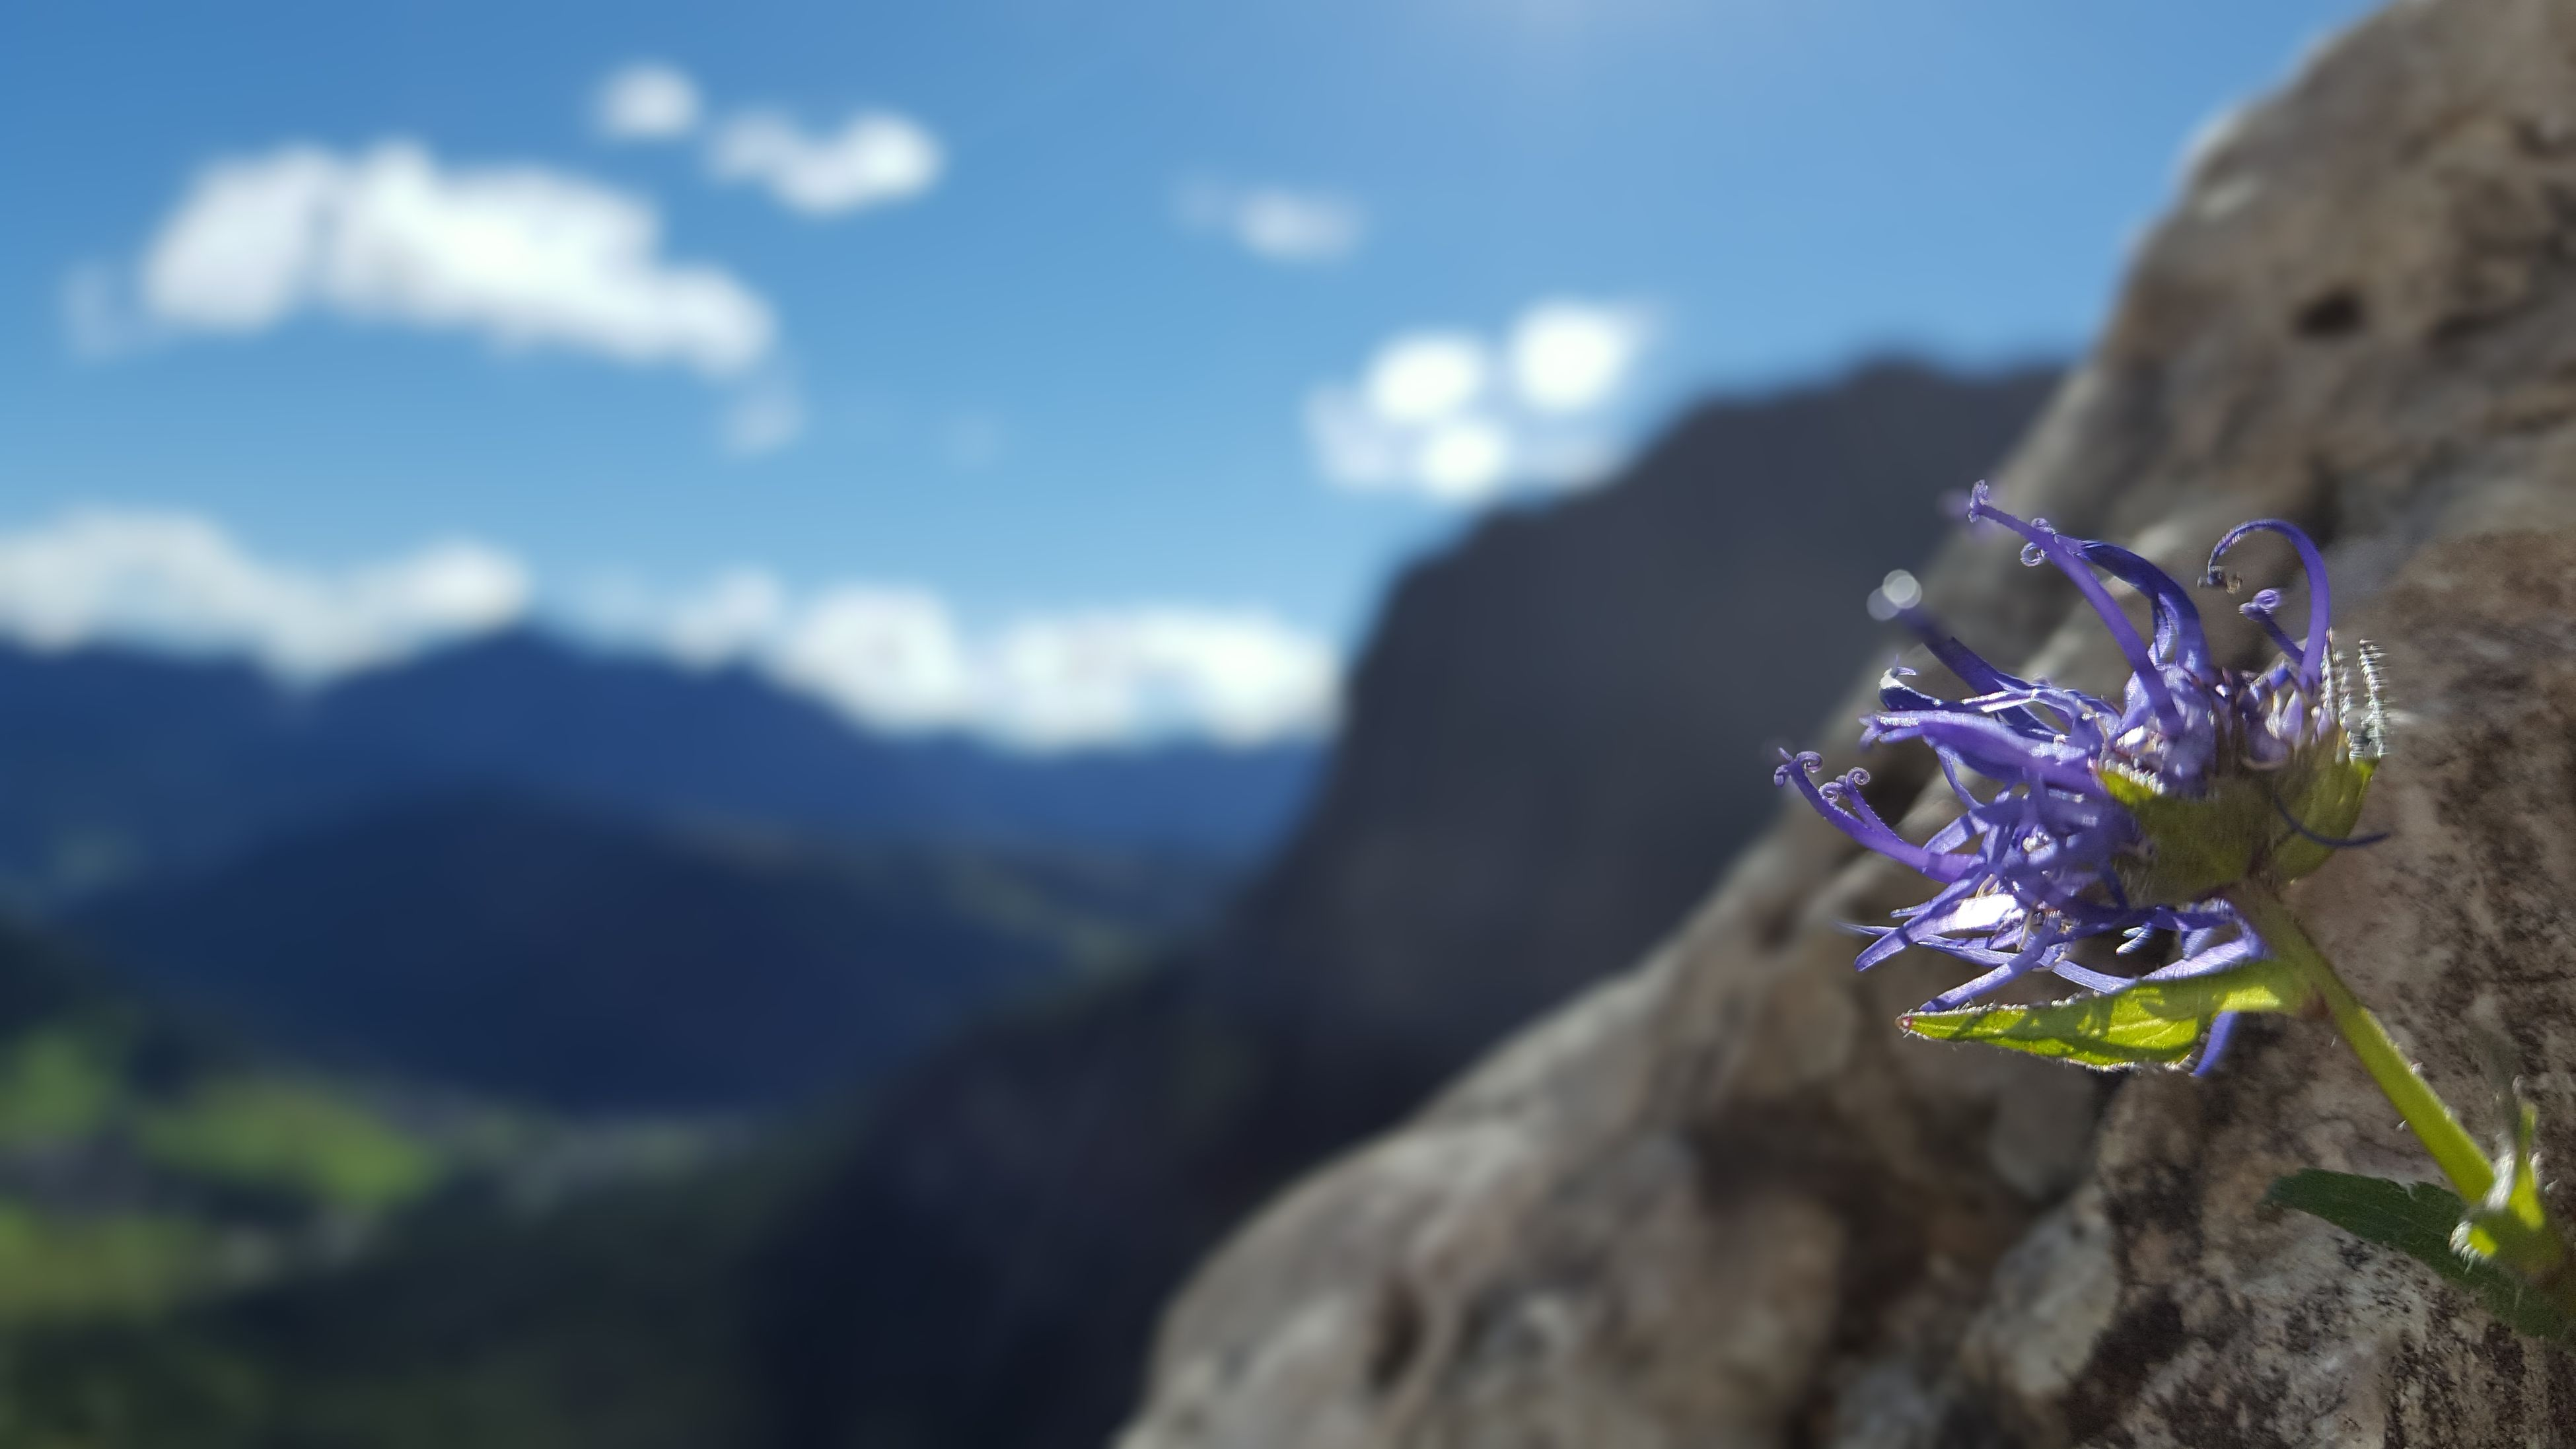 flower, nature, beauty in nature, fragility, outdoors, no people, focus on foreground, day, petal, close-up, plant, freshness, mountain, flower head, sky